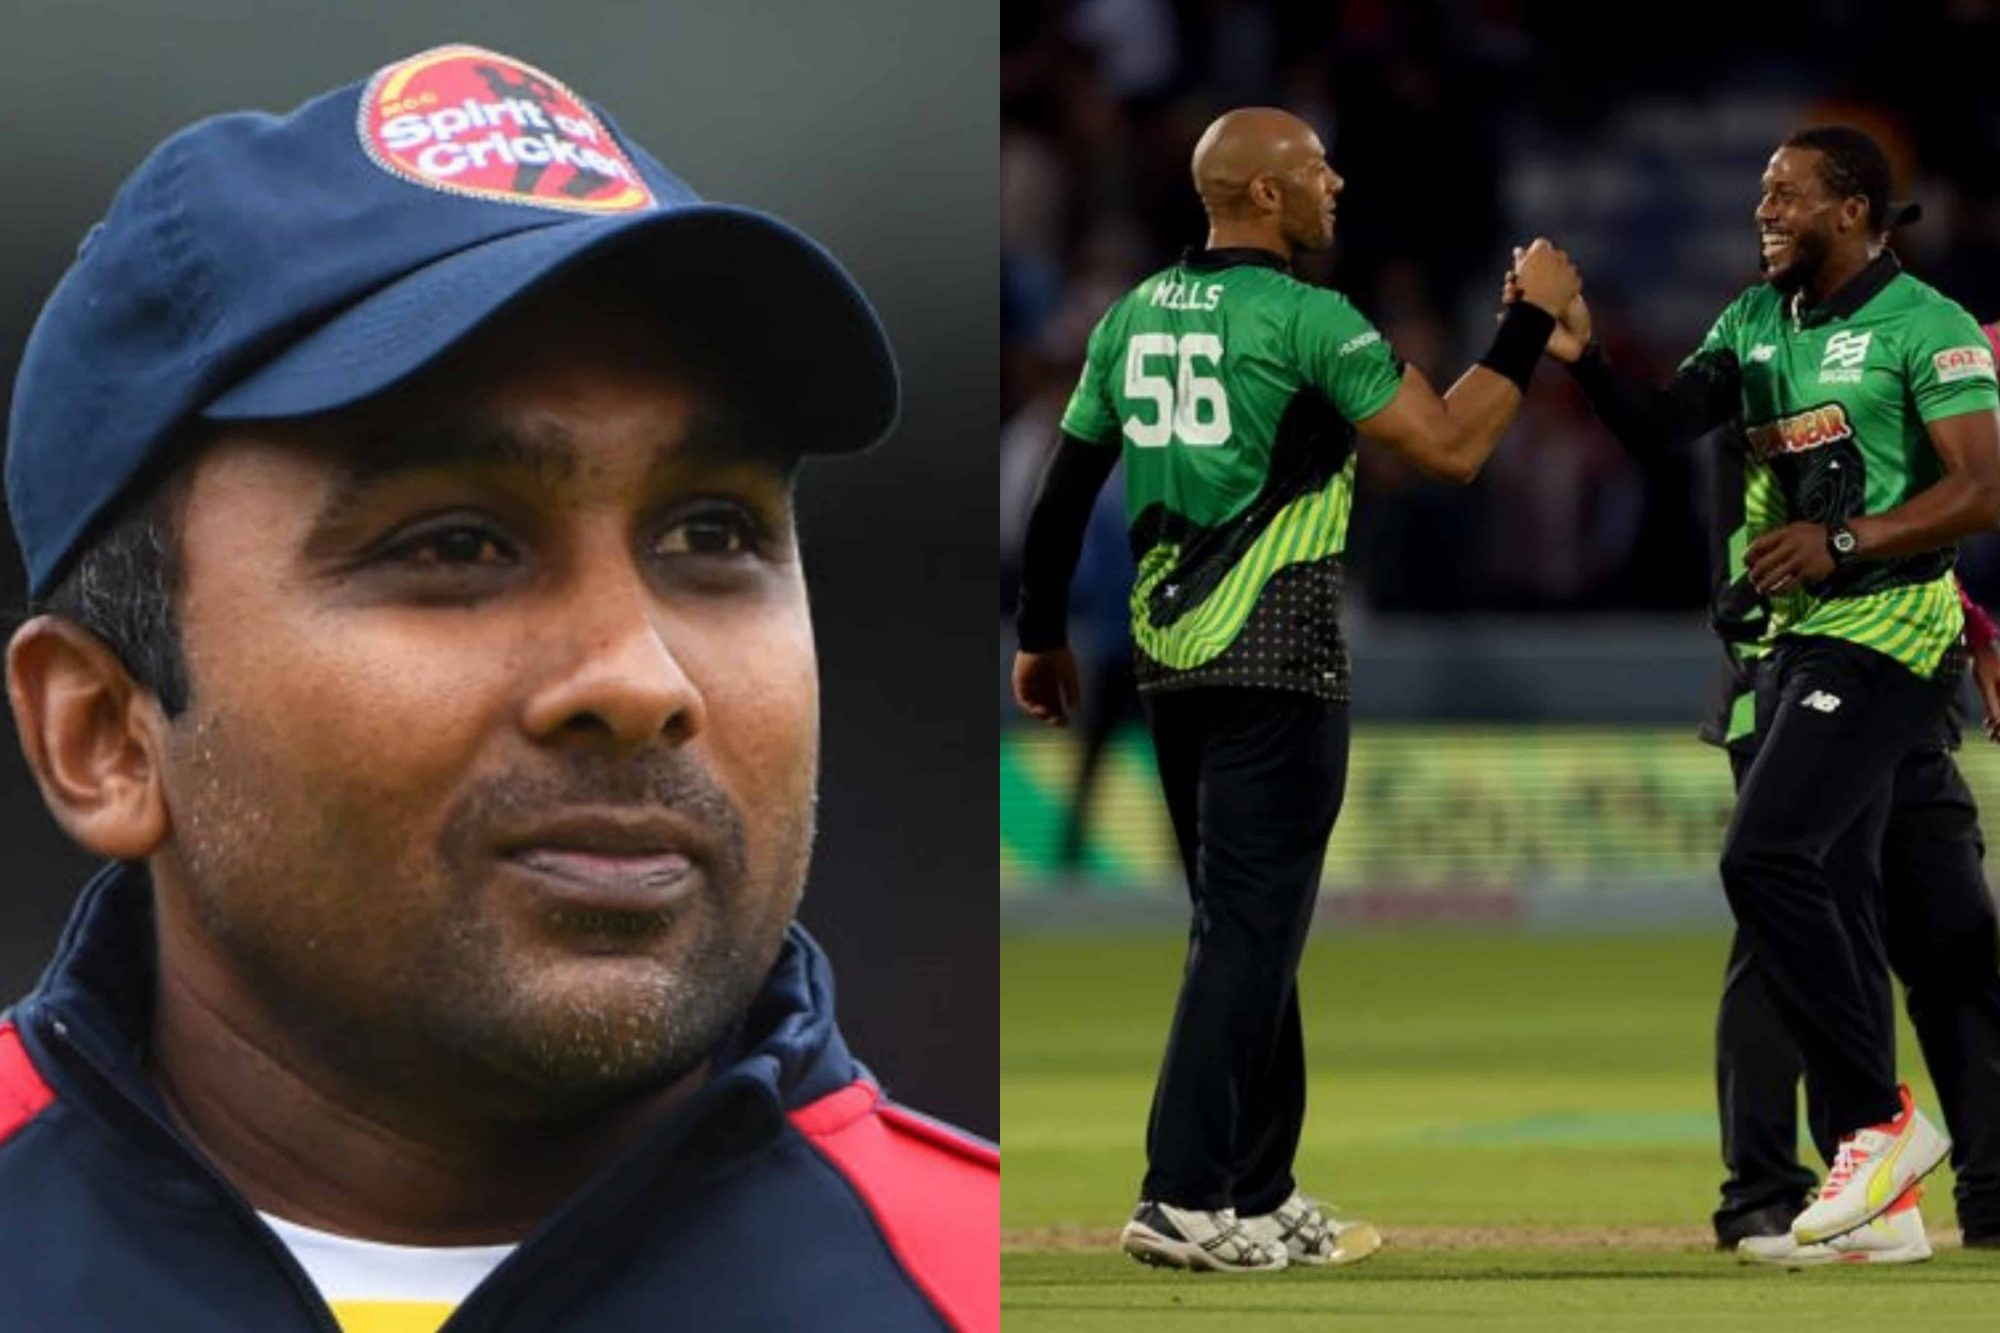 Mahela Jayawardene Backs A Southern Brave Left-Arm Pacer To Be Included In T20 World Cup Squad For England